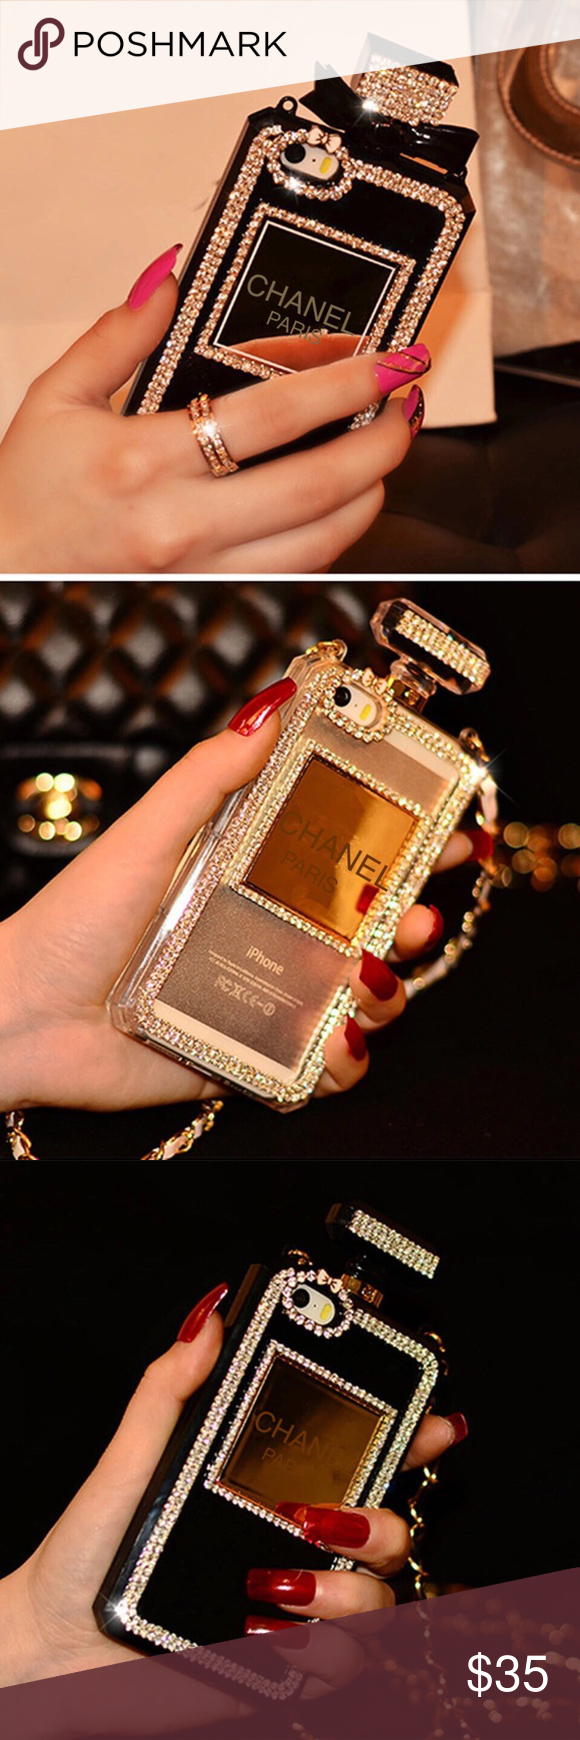 Iphone Chanel case with chain price catalog photo